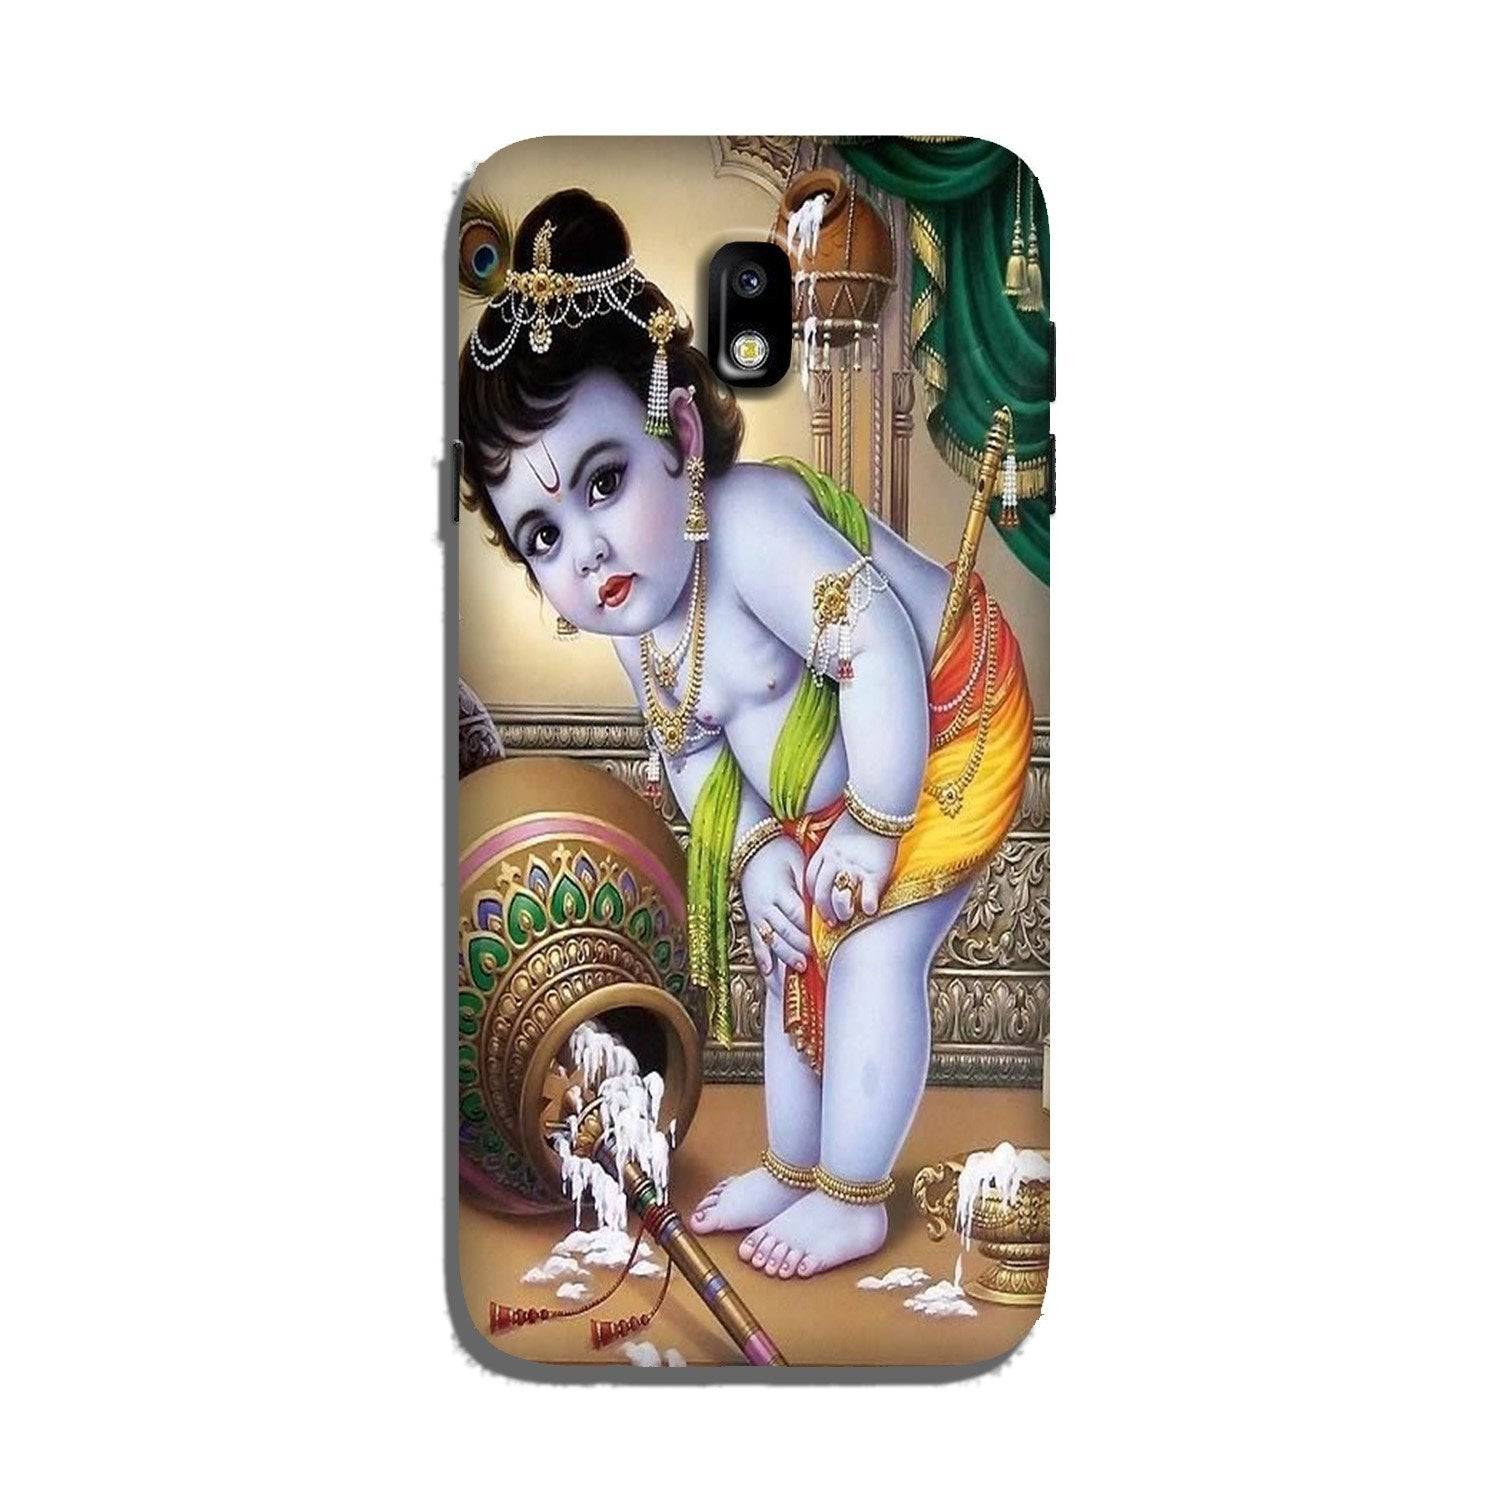 Bal Gopal2 Case for Galaxy J5 Pro